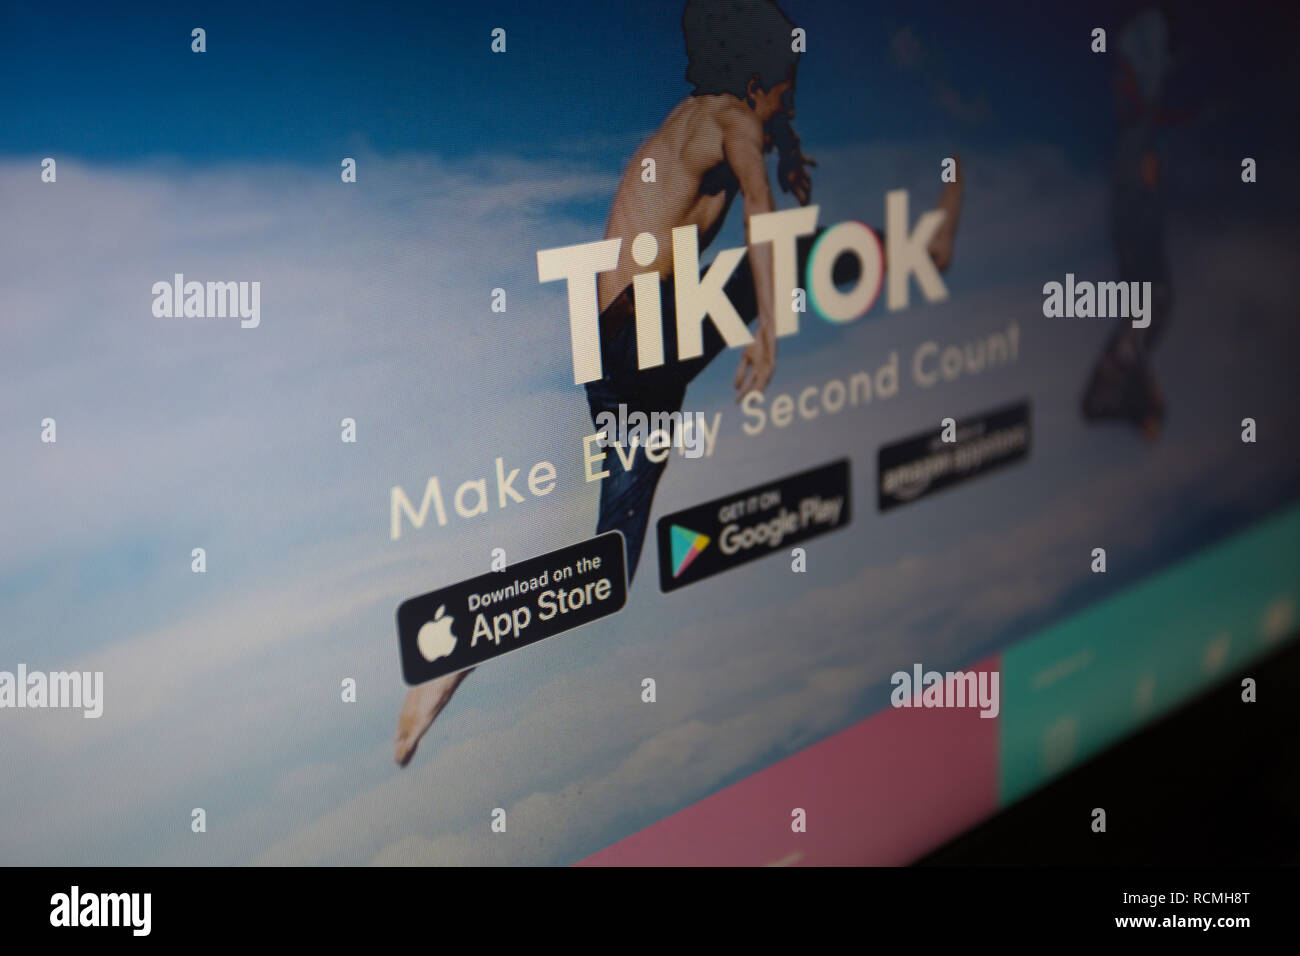 TikTok, a.k.a. Douyin in China, is a media app for creating and sharing short videos. Logo on its website is shown on a laptop computer screen - Stock Image